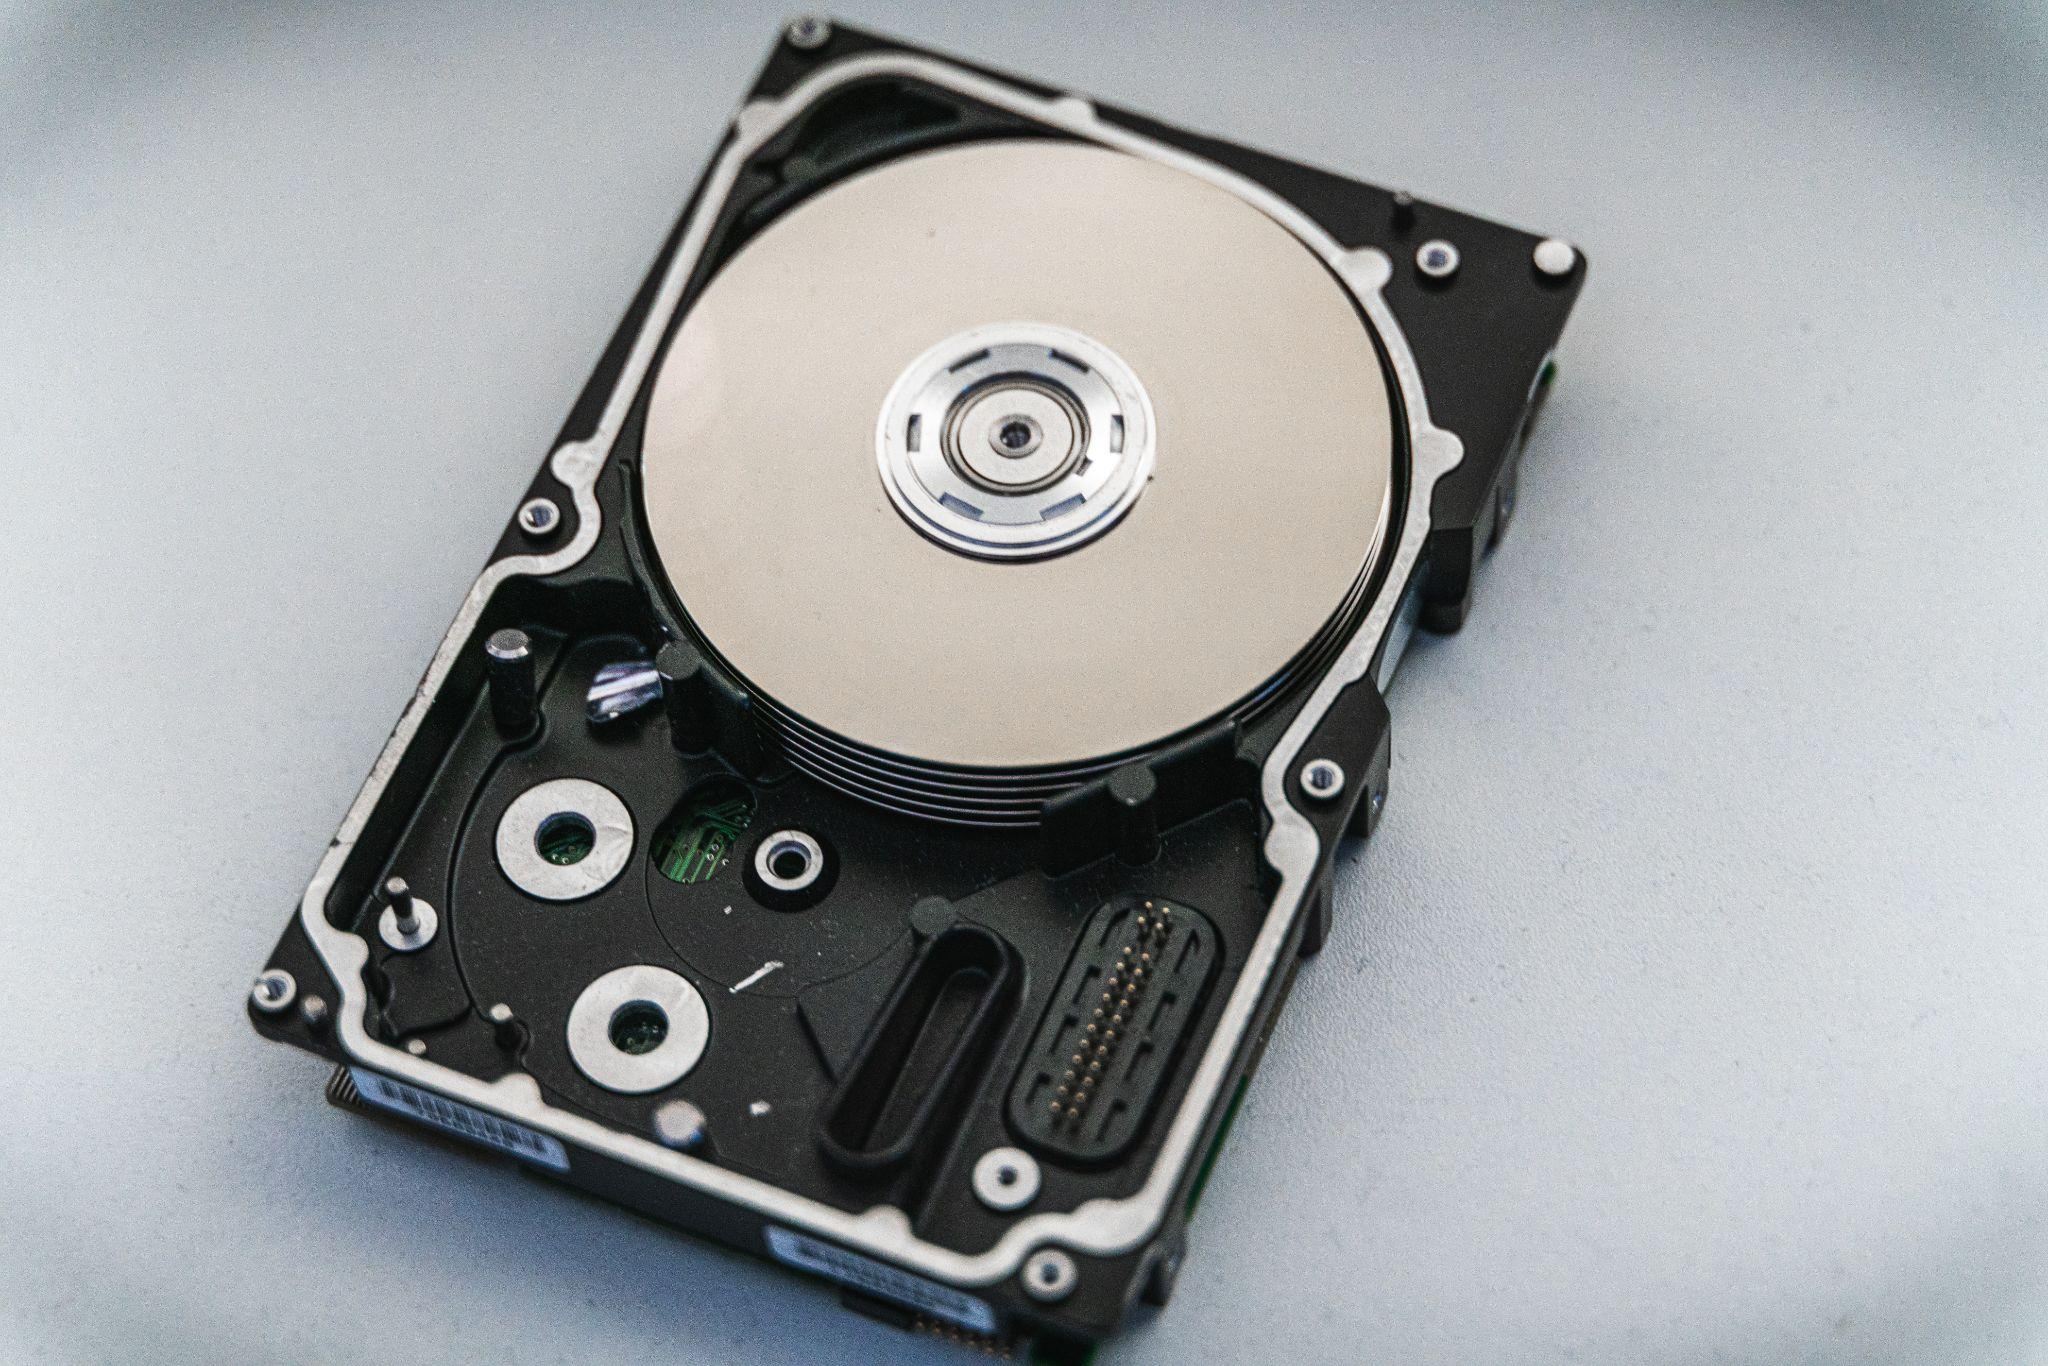 An image of a hard disk